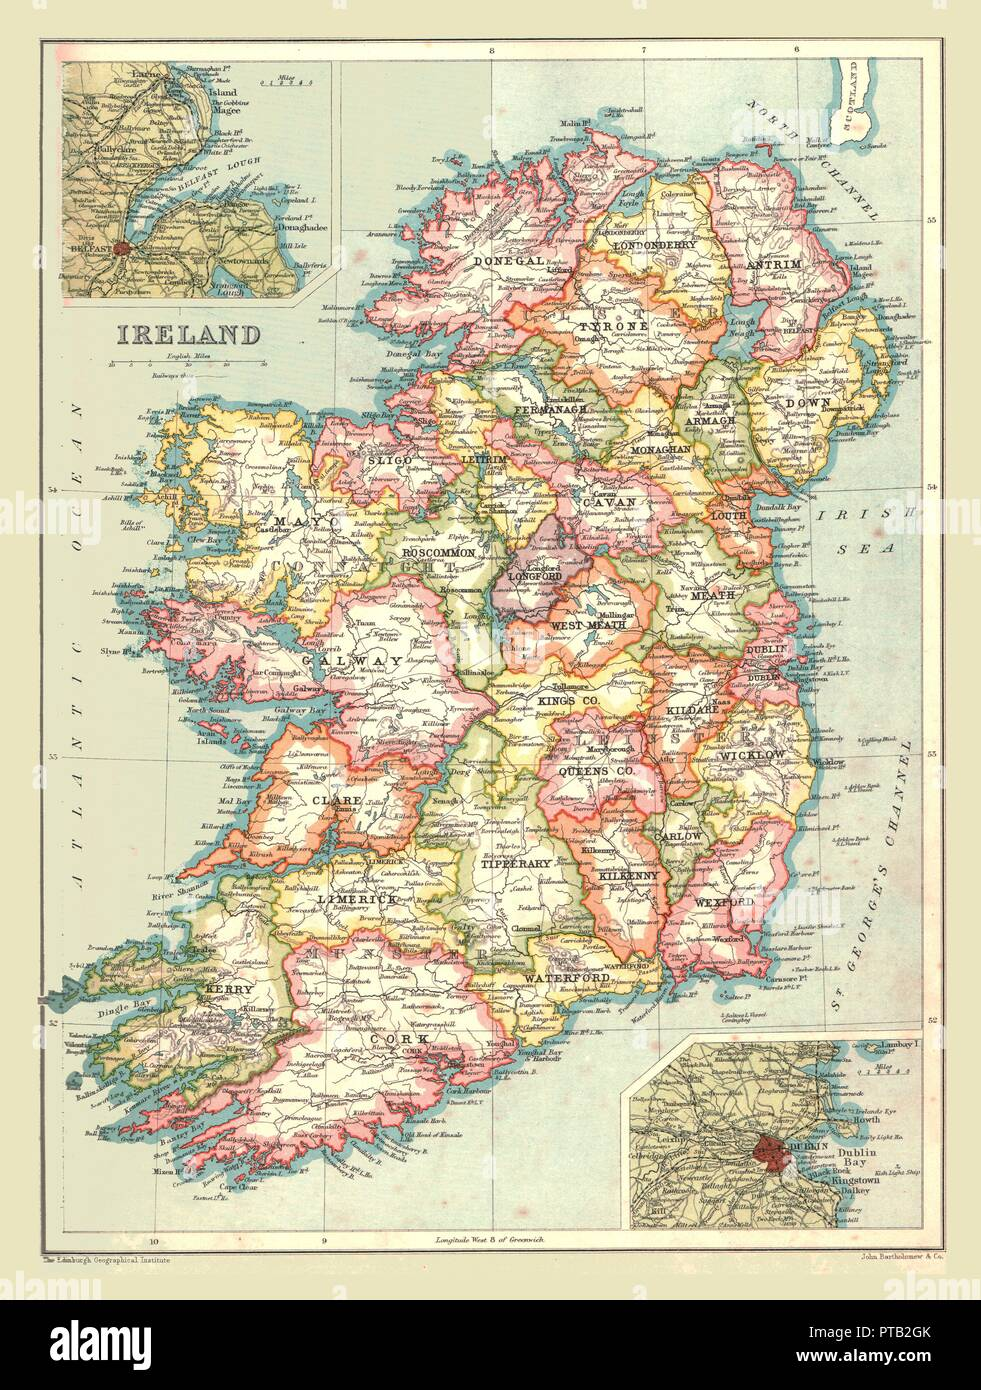 Map Of Ireland Showing Dingle.Map Of Ireland 1902 Creator Unknown Stock Photo 221519667 Alamy